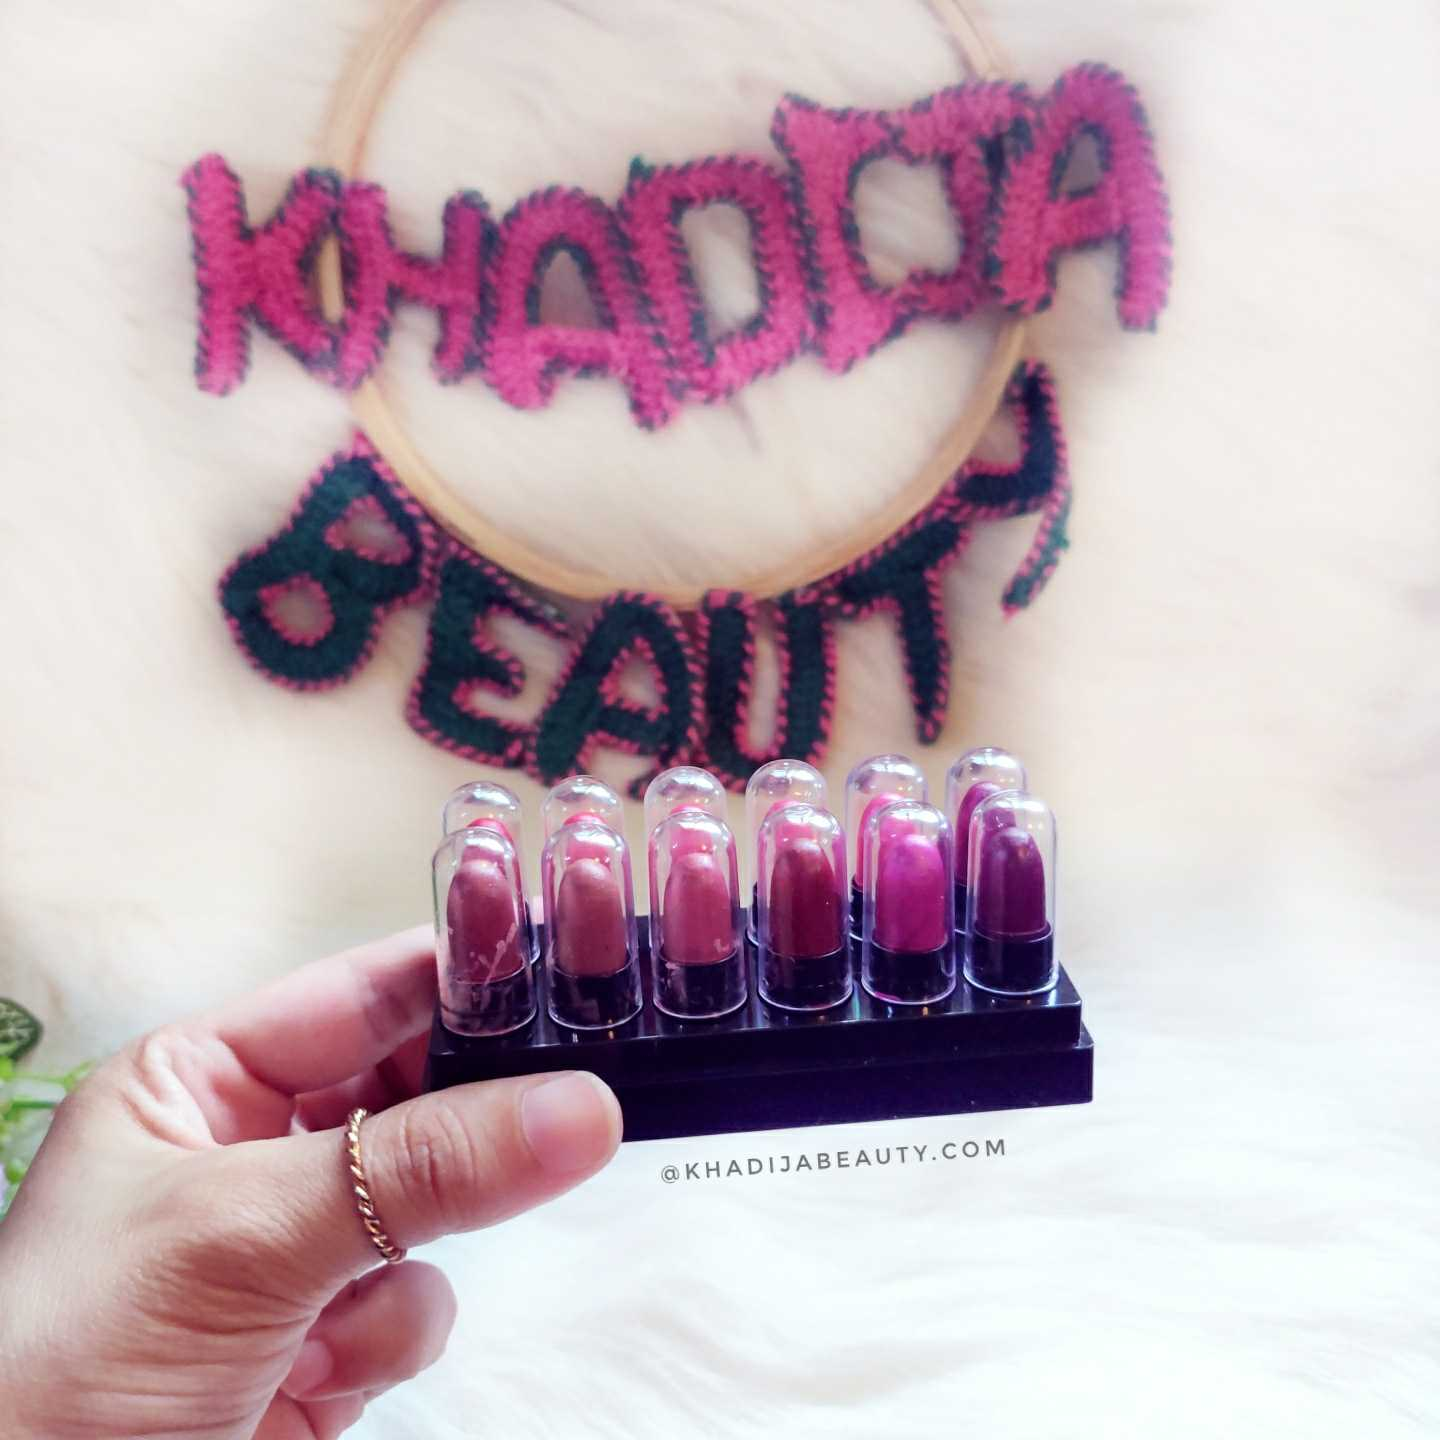 Stay Quirky Soft Matte Mini Lipstick Set Review| Kit 1